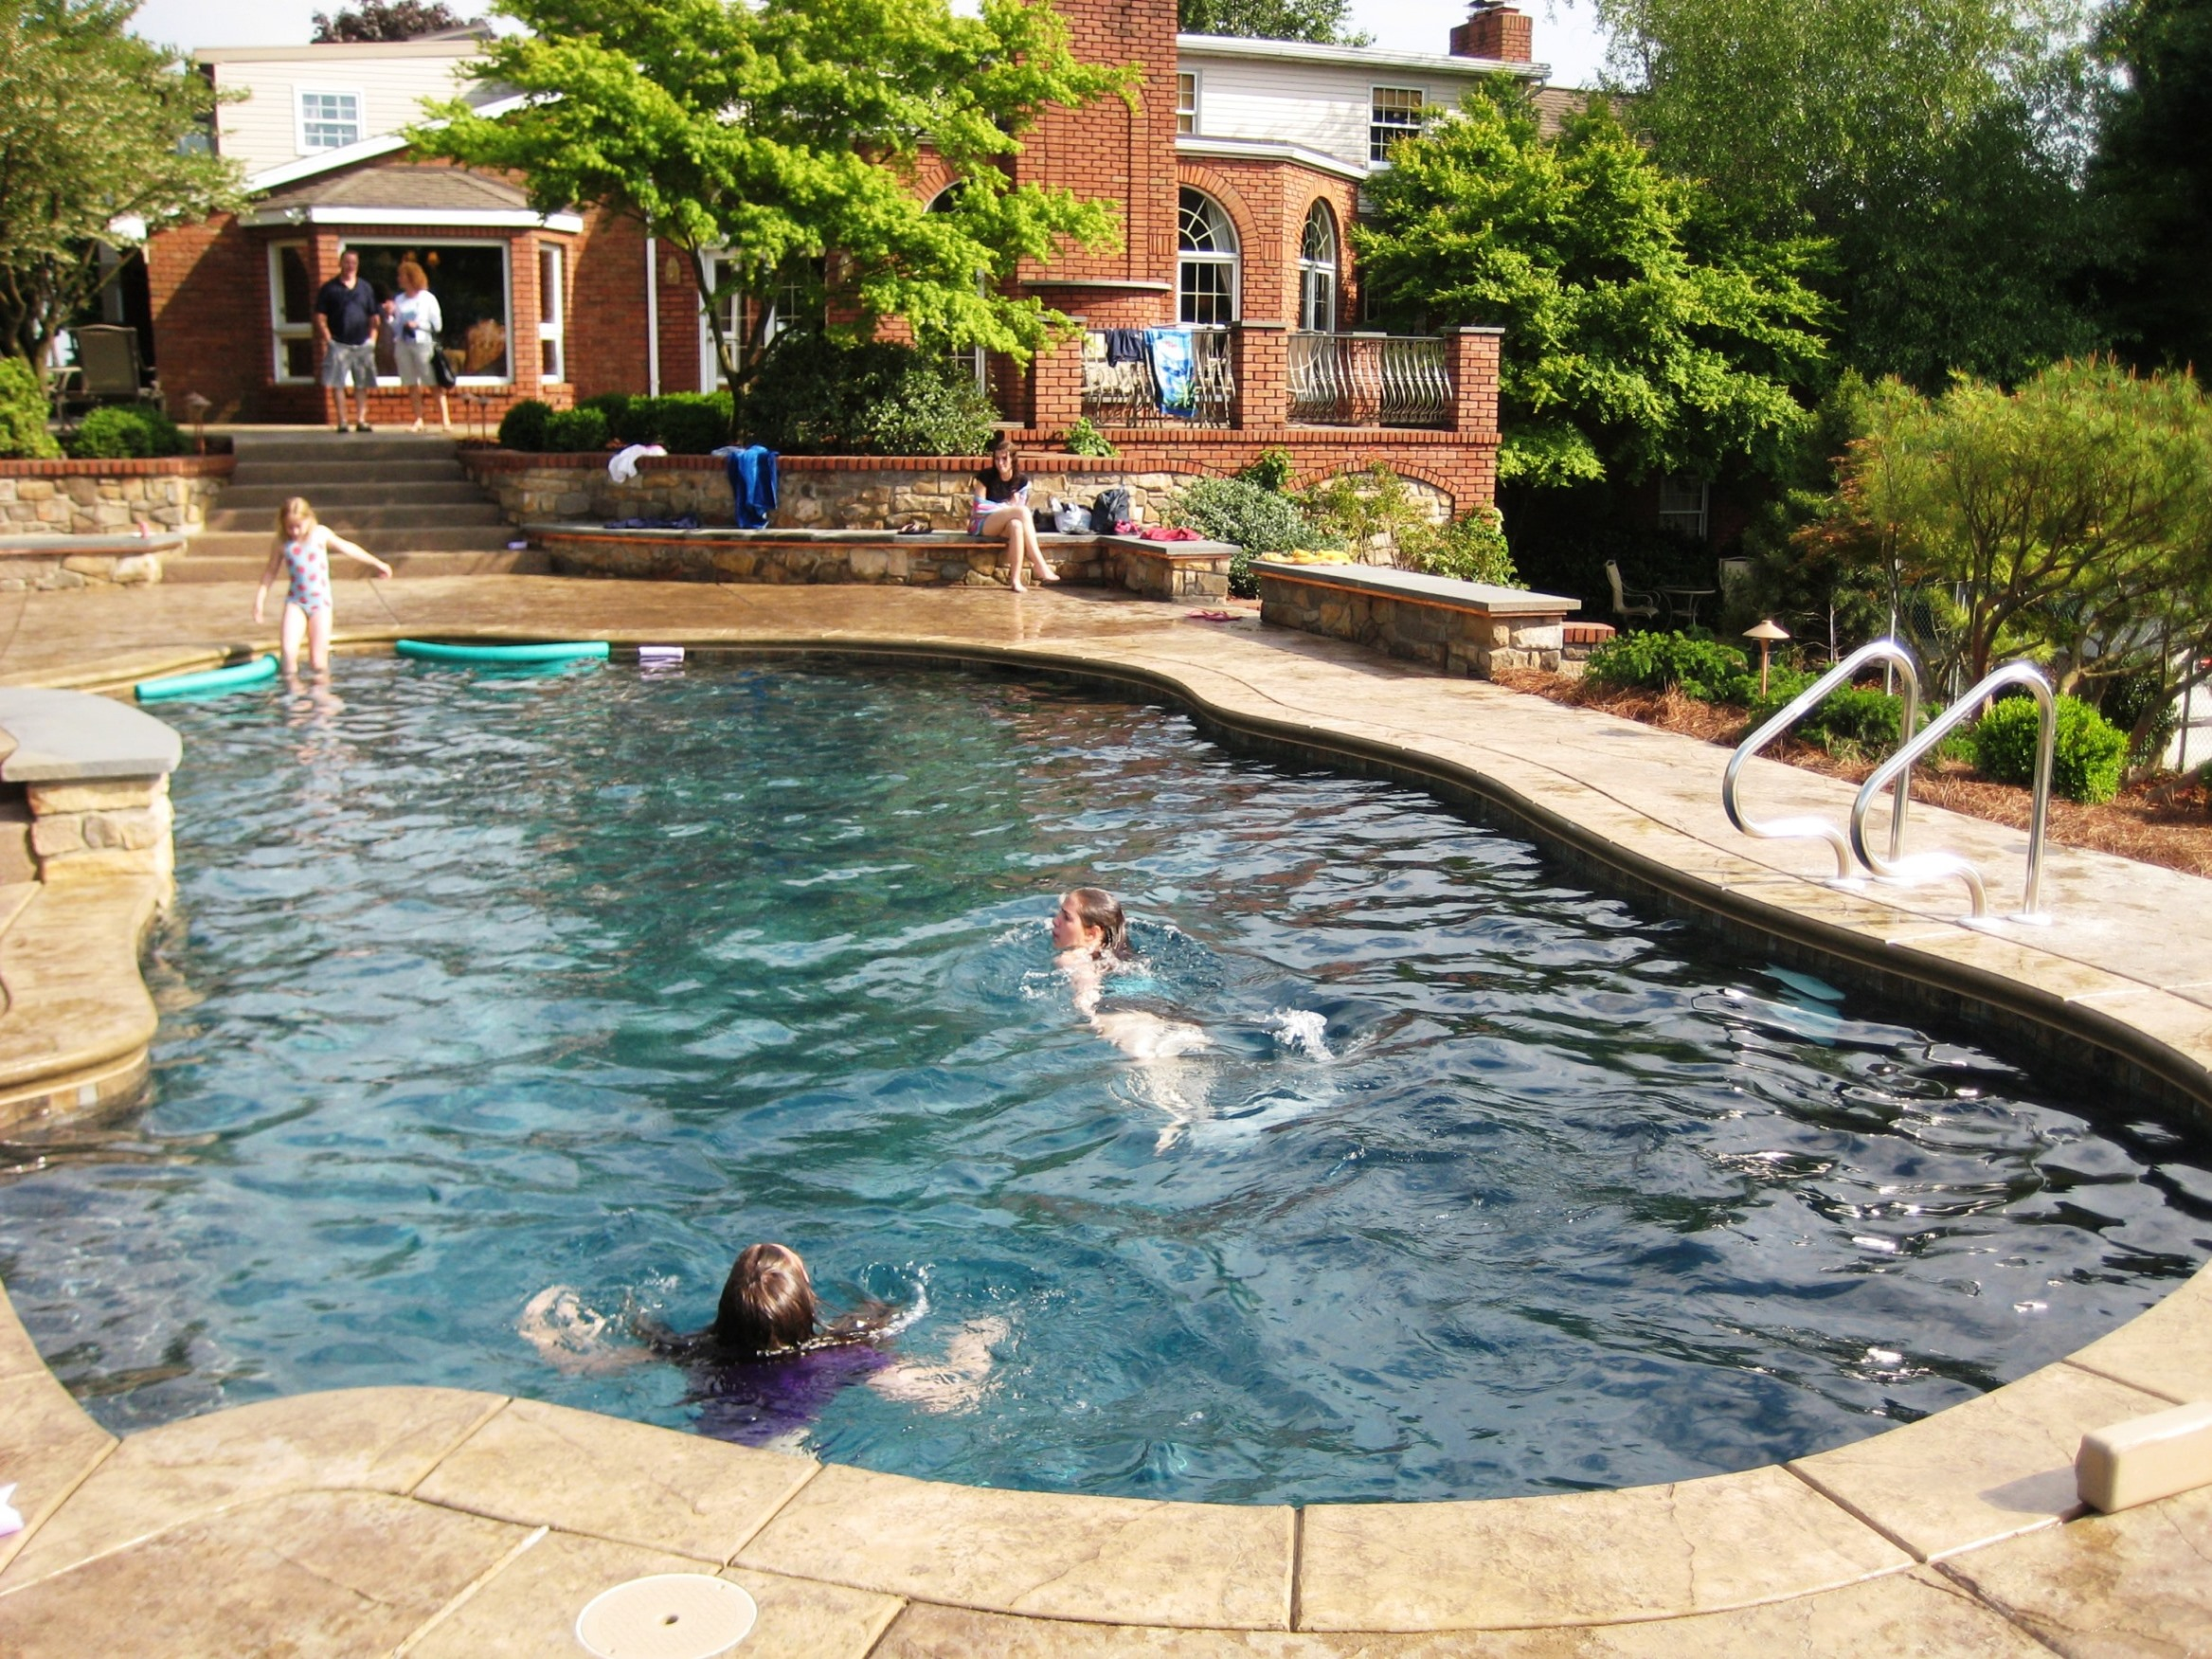 Custom pool-side terraces add seating (without clutter) for gatherings around pool with built-in swim jets, Lancaster, PA